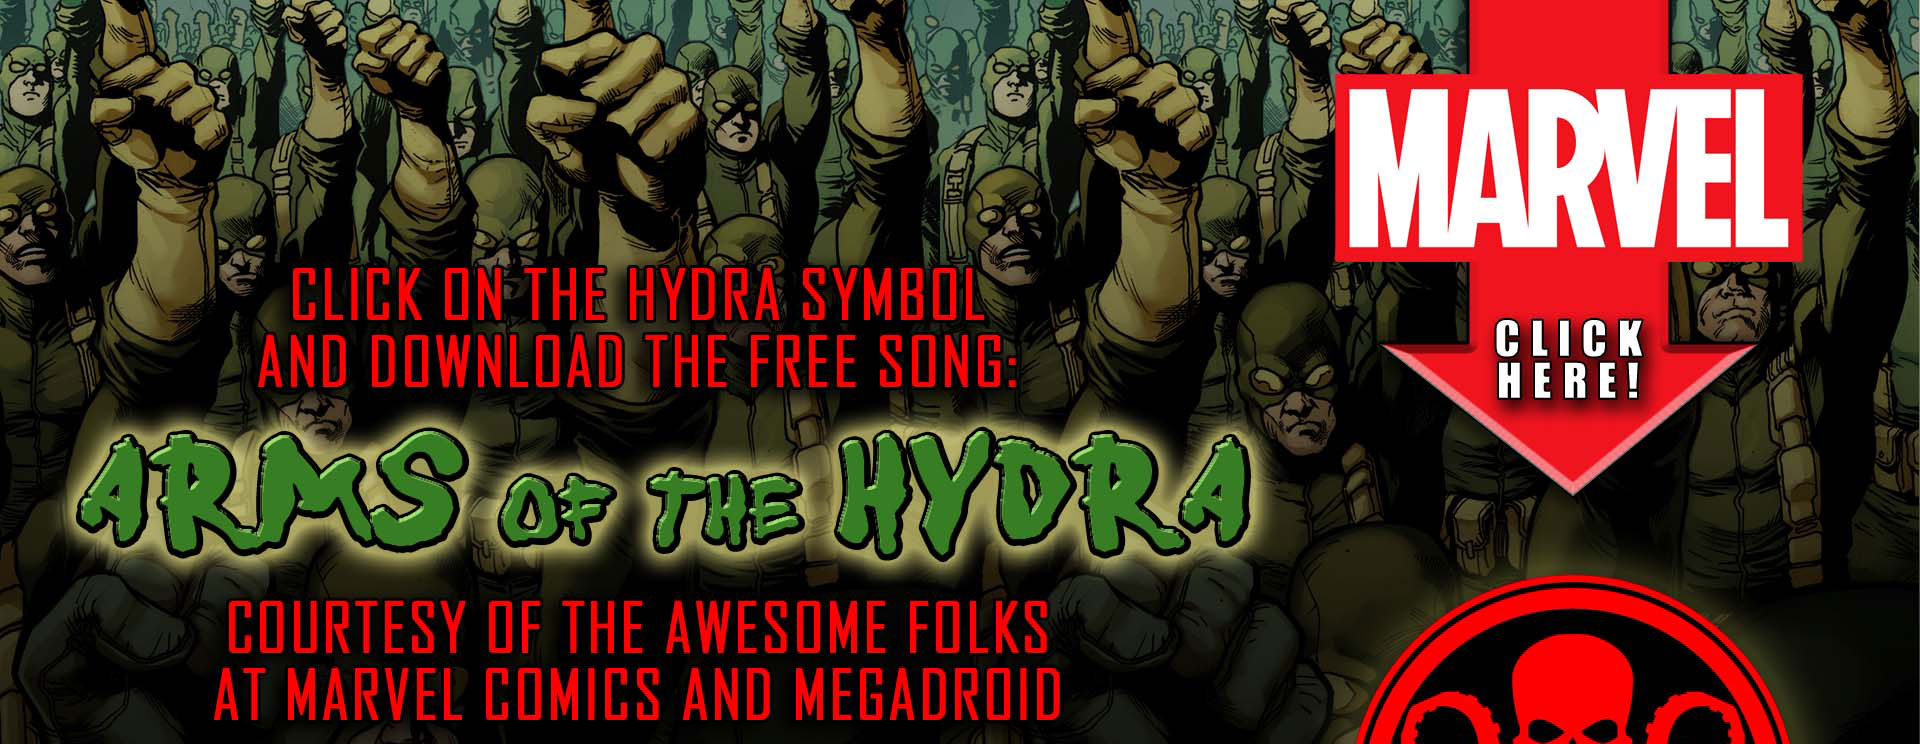 HYDRA-DL-PAGE-FLAT_Slices_01